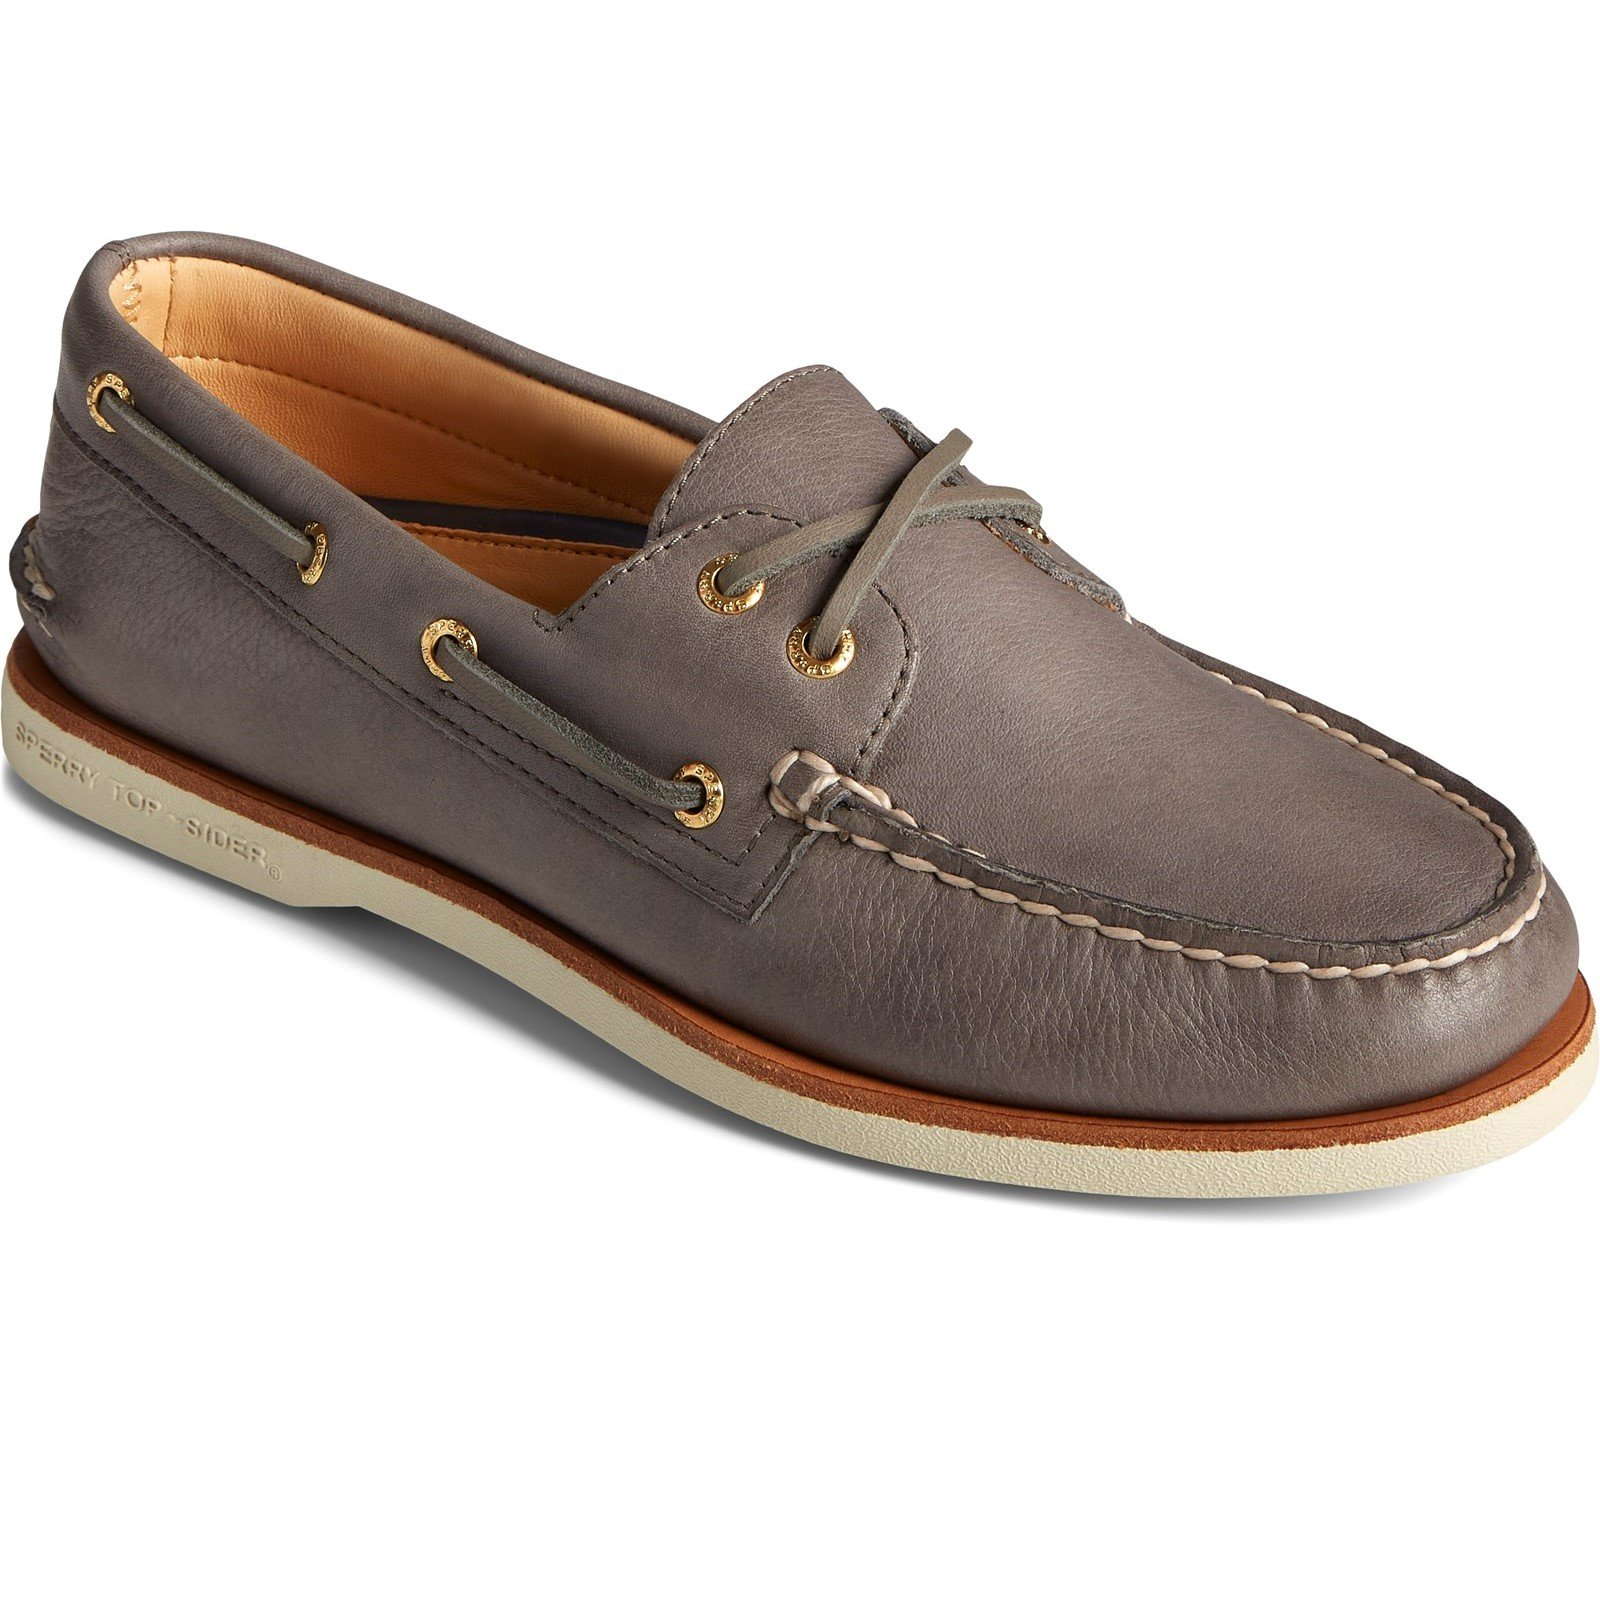 Sperry Men's A/O 2-Eye Boat Shoe Various Colours 32926 - Charcoal 11